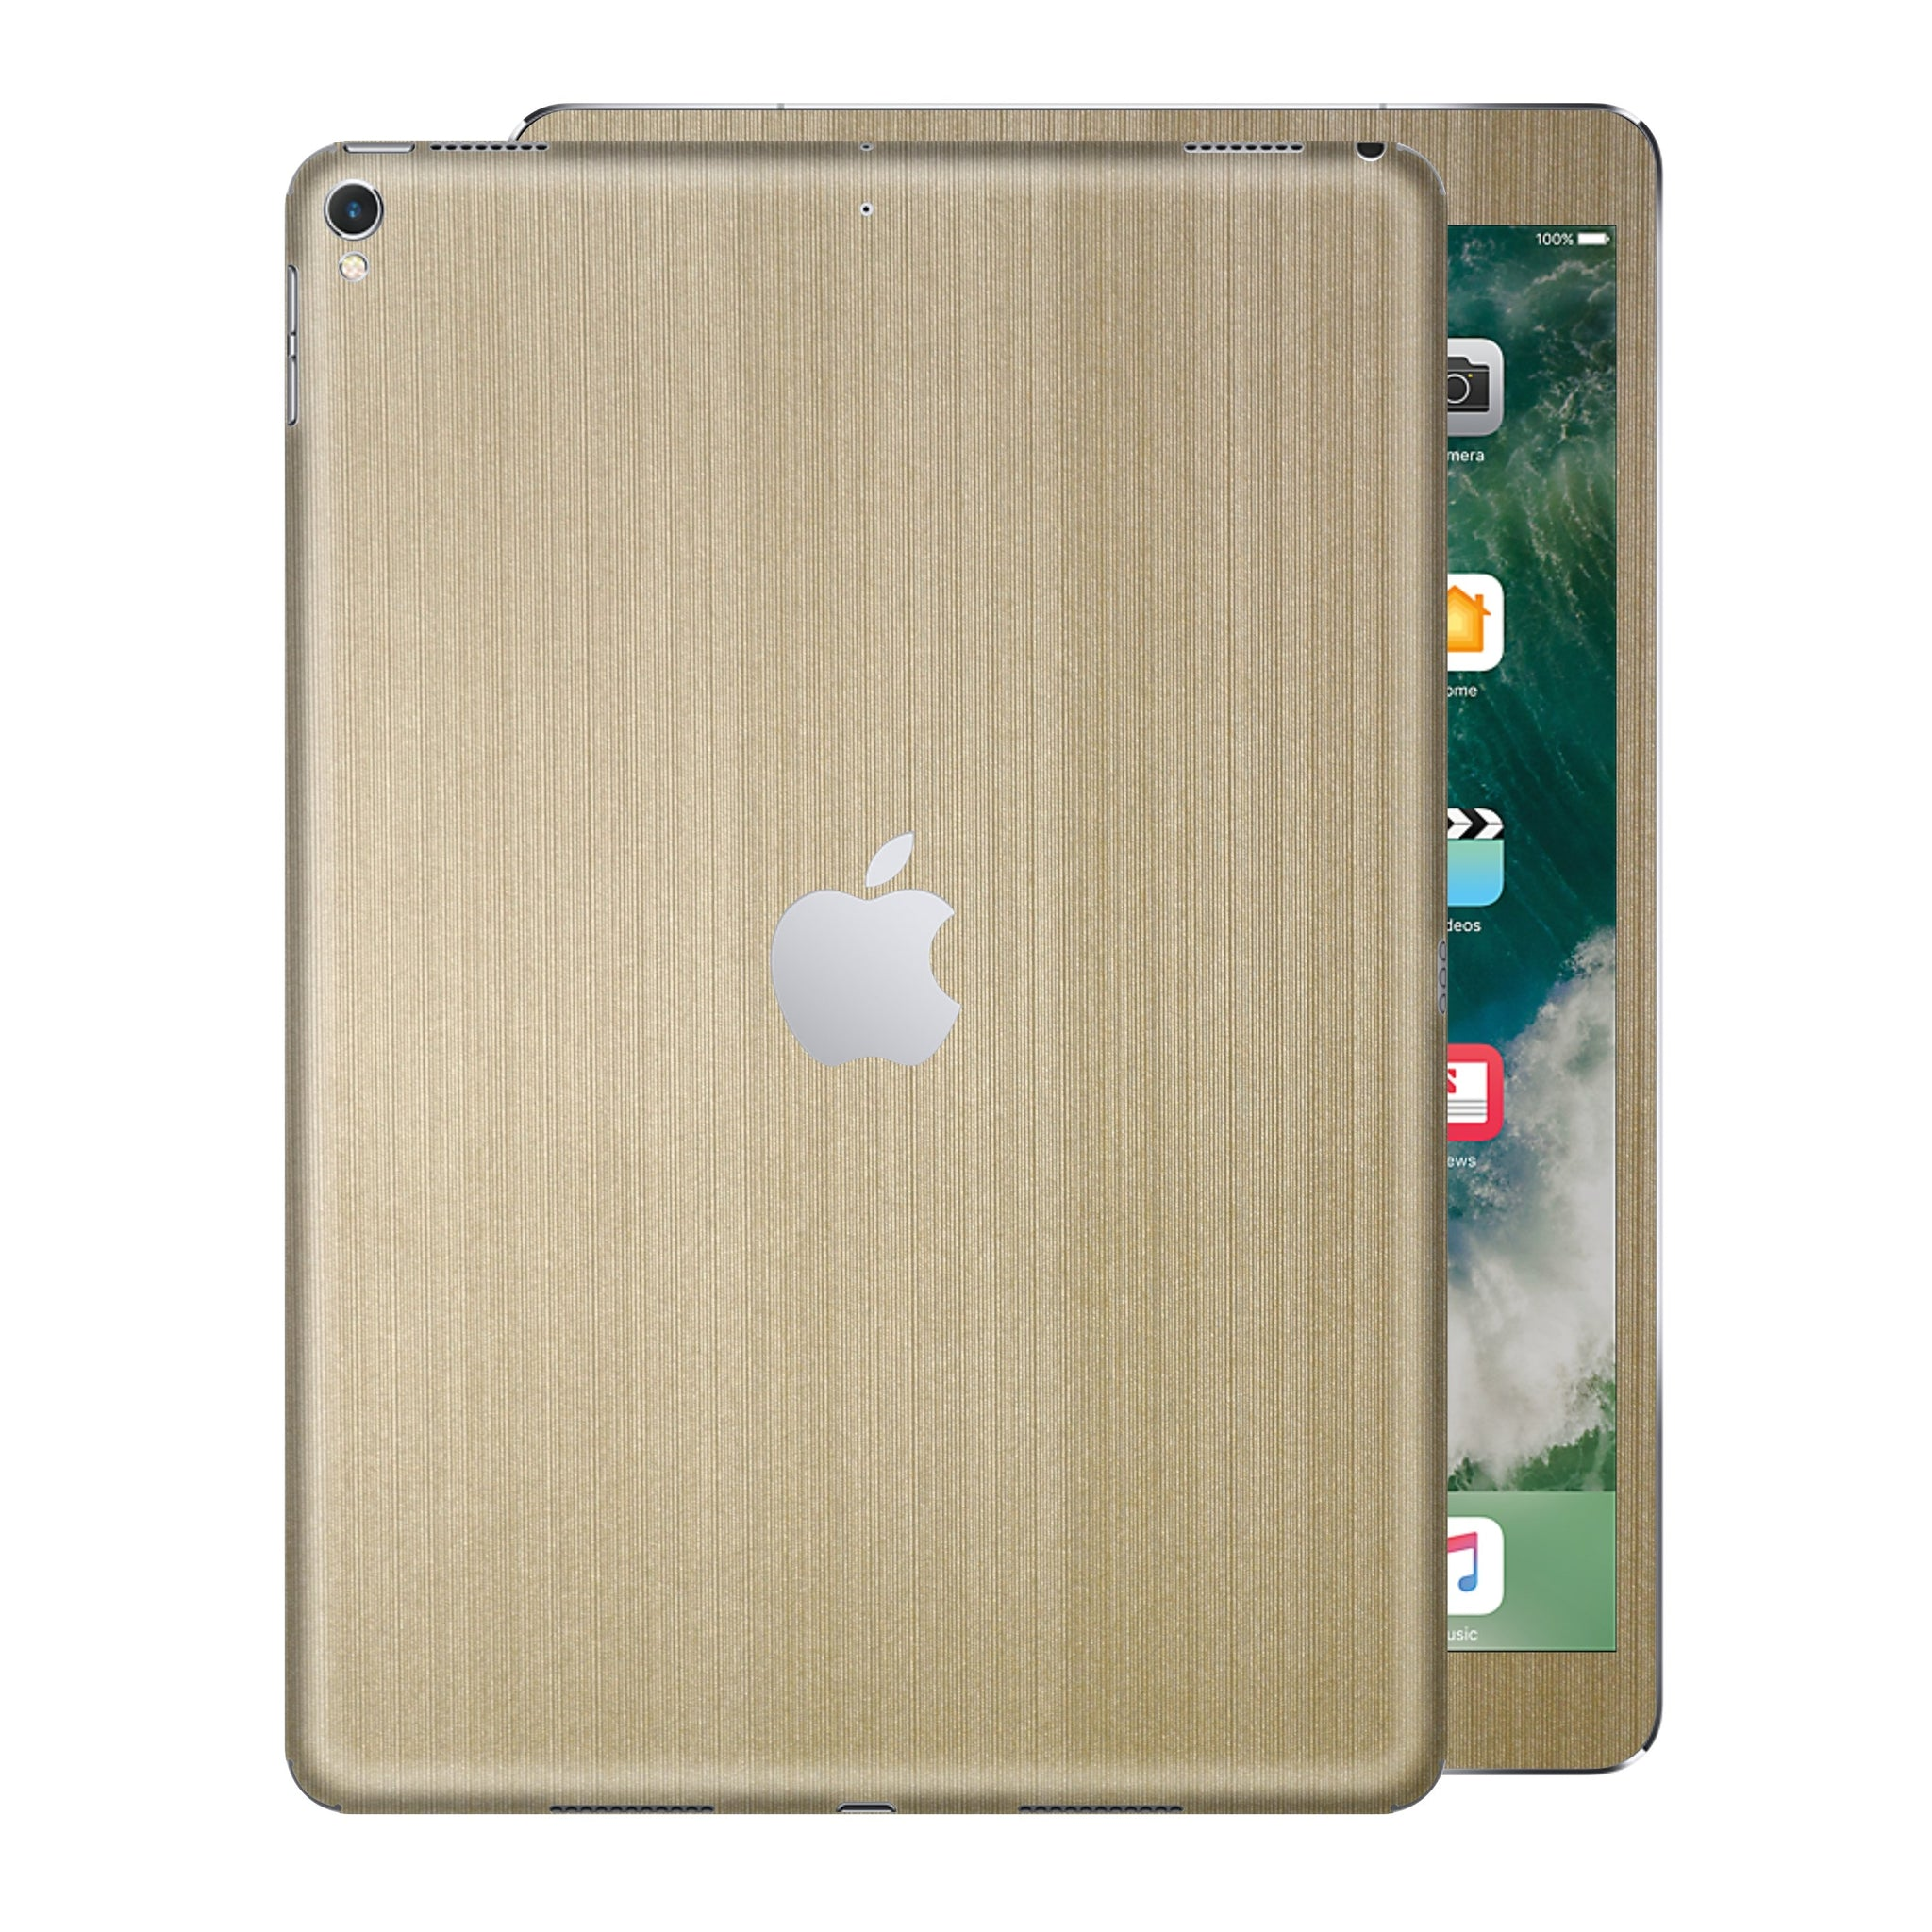 iPad PRO 12.9 inch 2017 Premium Brushed Champagne Gold Skin Wrap Sticker Decal Cover Protector by EasySkinz